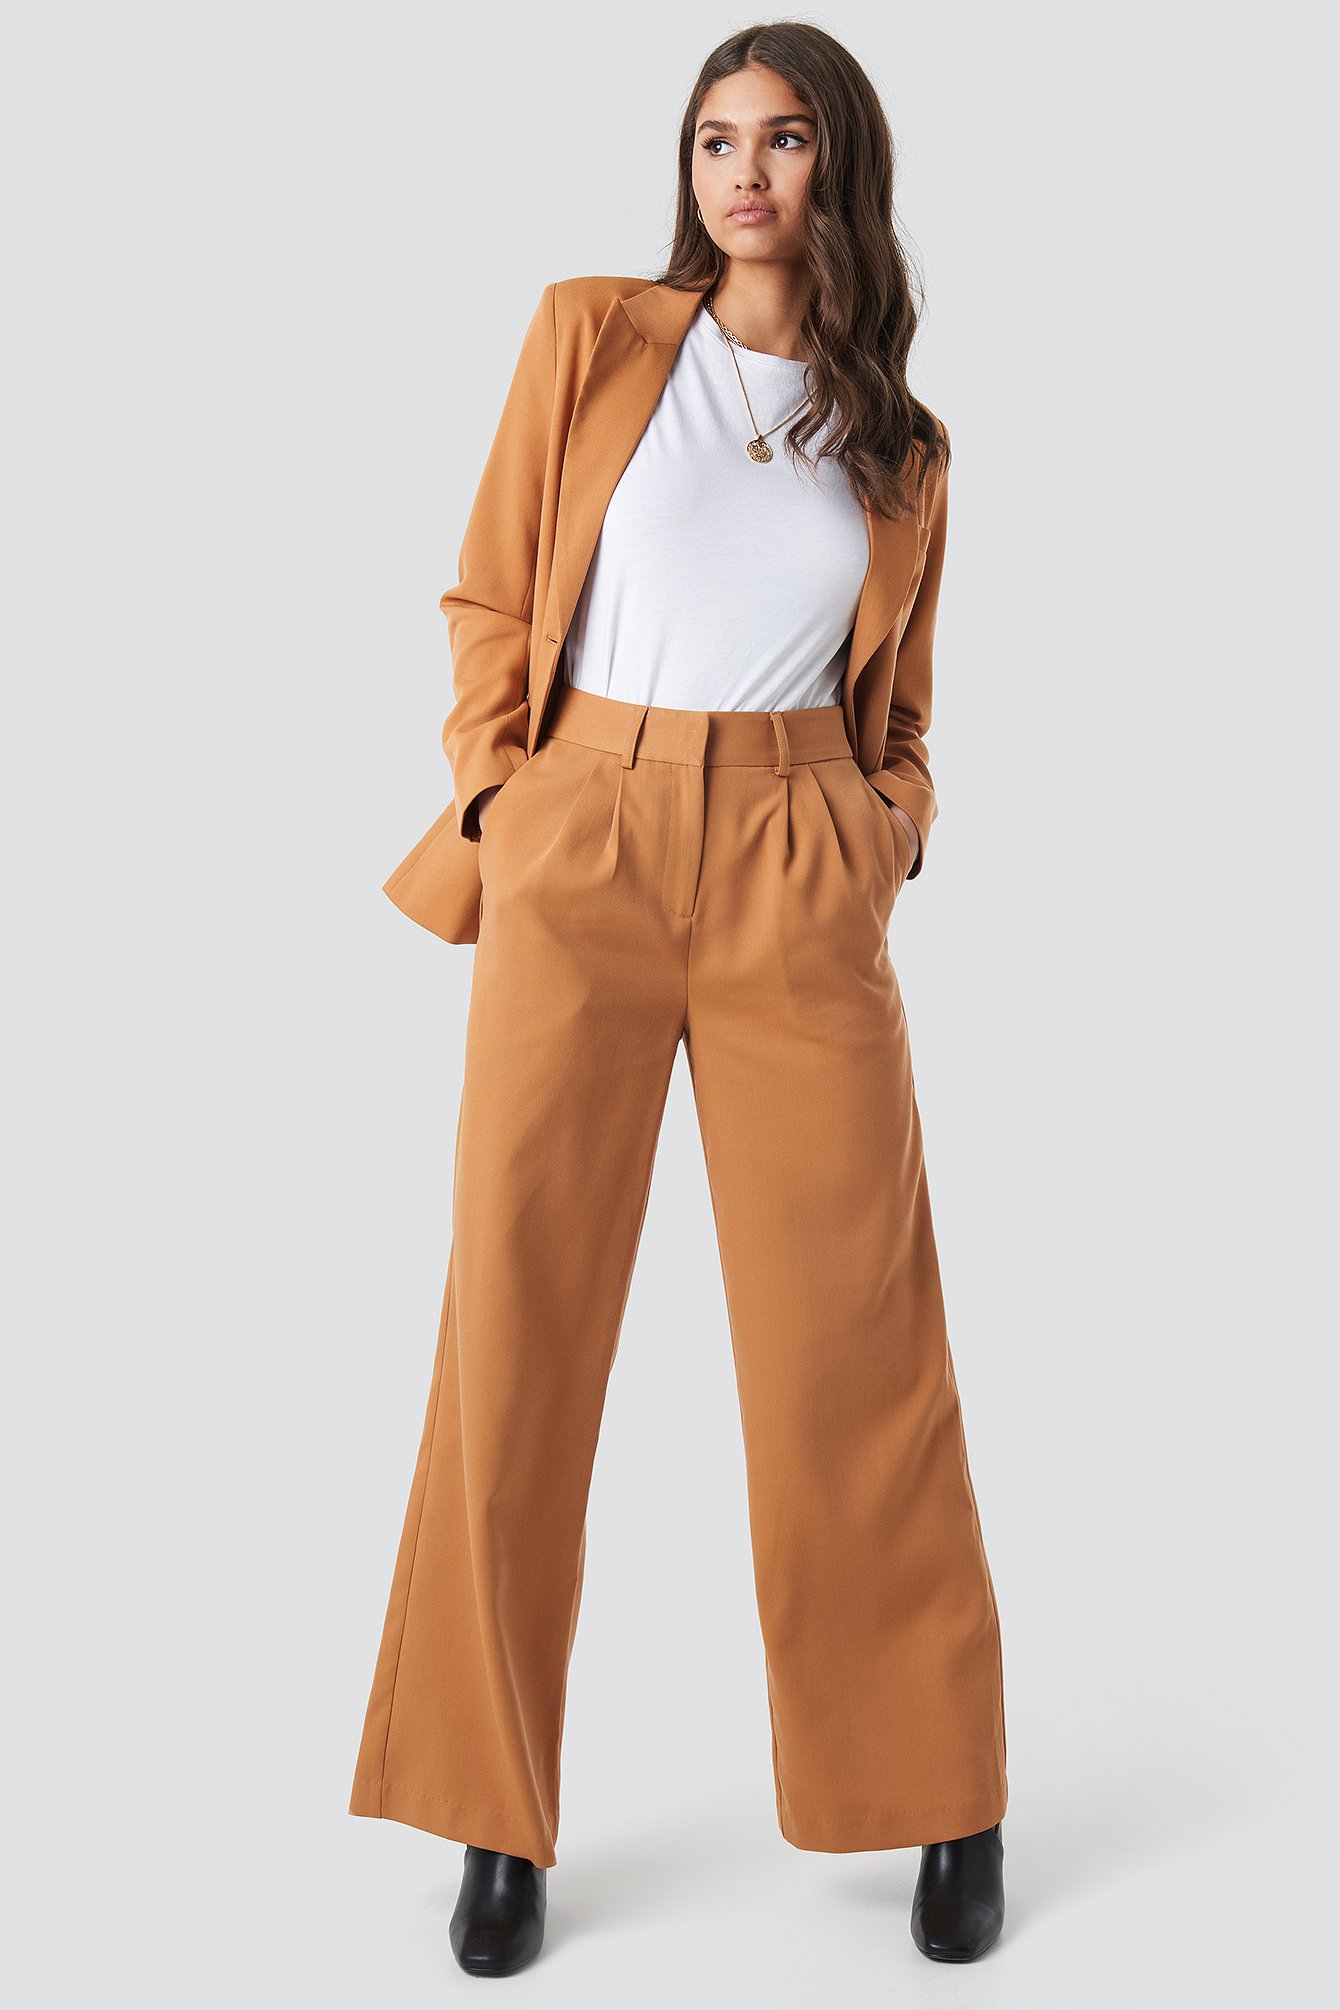 na-kd classic -  High Waist Flared Suit Pants - Brown,Orange